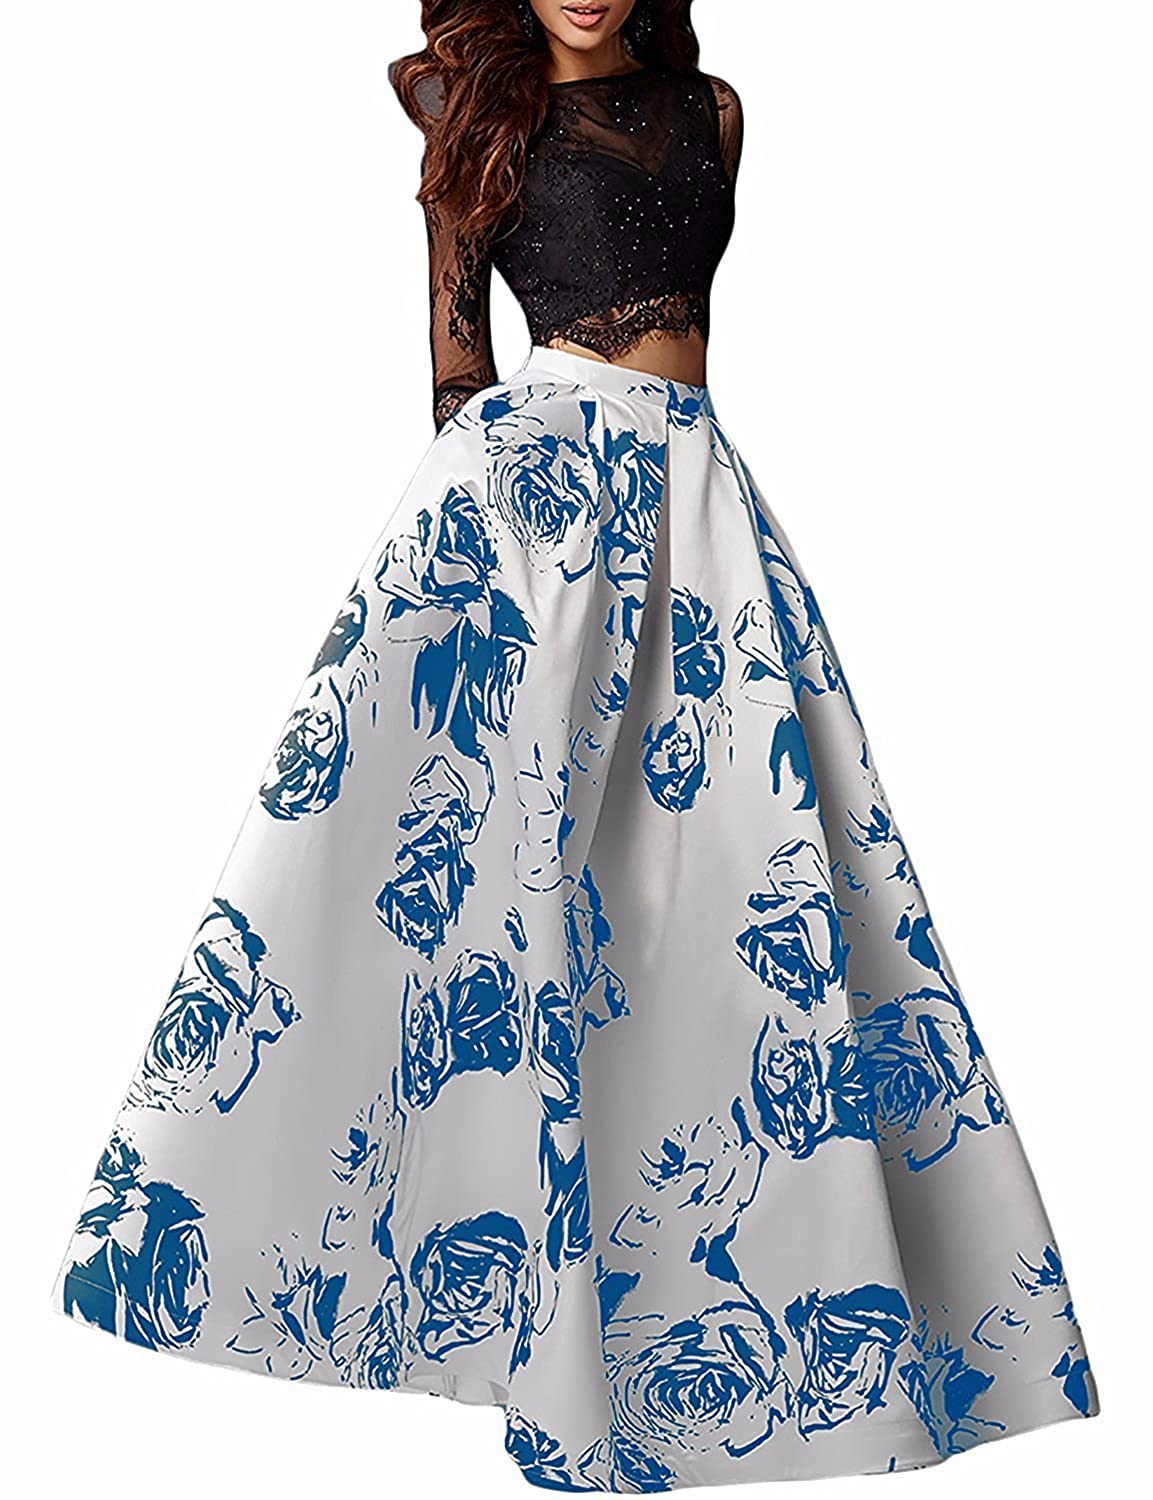 bluee Yiweir Women's Two Piece Prom Dresses 2018 Long Floral Print Lace Beads Formal Gowns YP038